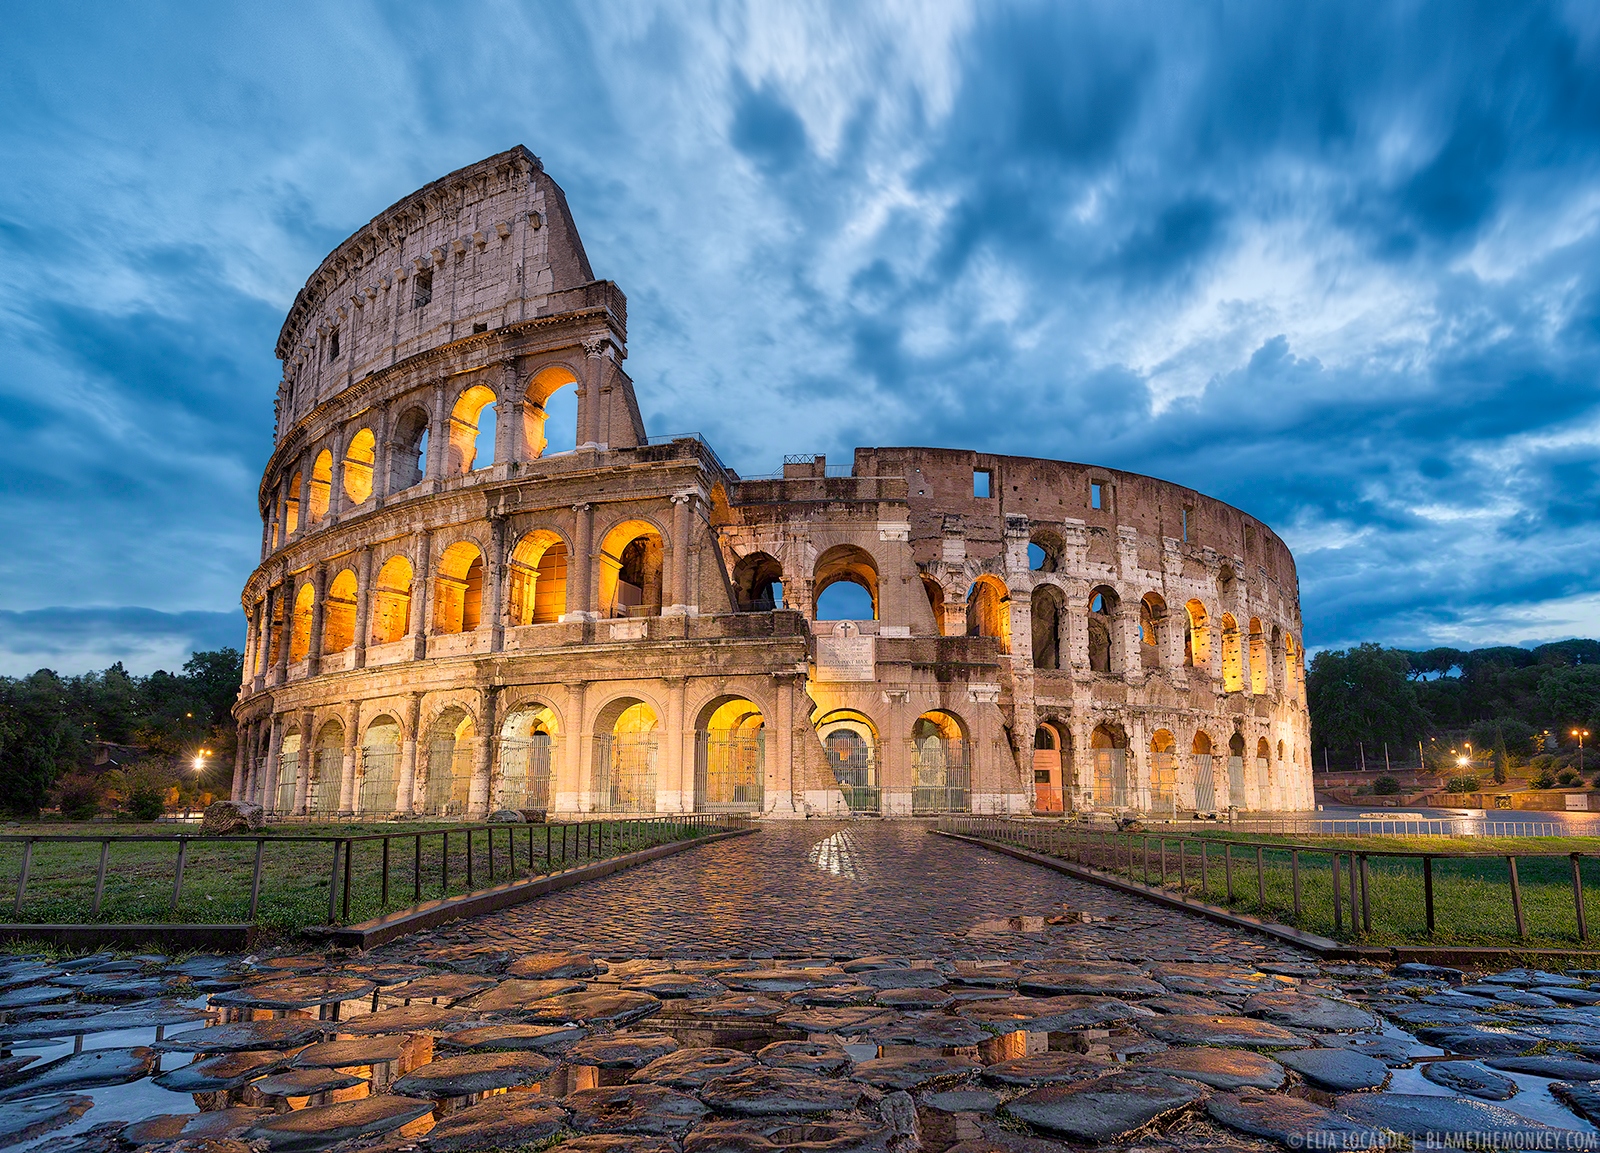 Elia-Locardi-Travel-Photography-Whispers-From-The-Past-The-Colosseum-Rome-Italy-1600-WM.jpg